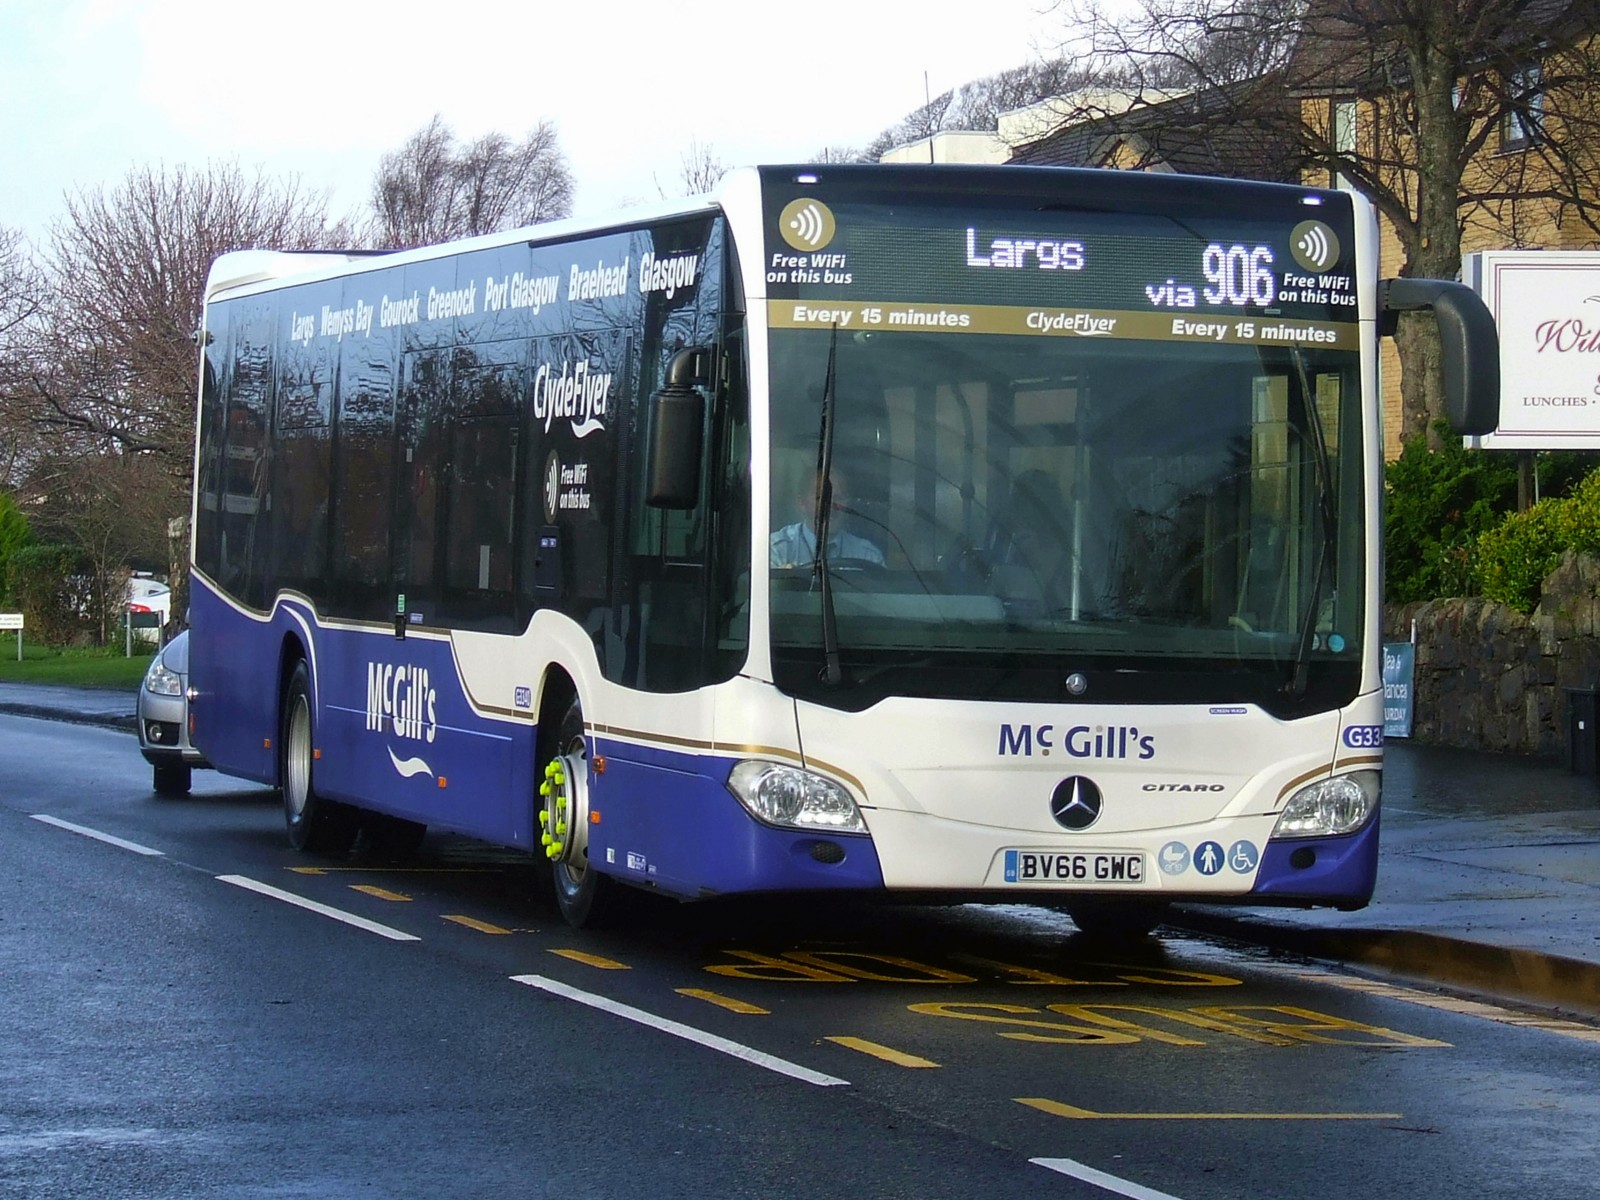 054-michelin-solutions-mcgills-buses.jpg